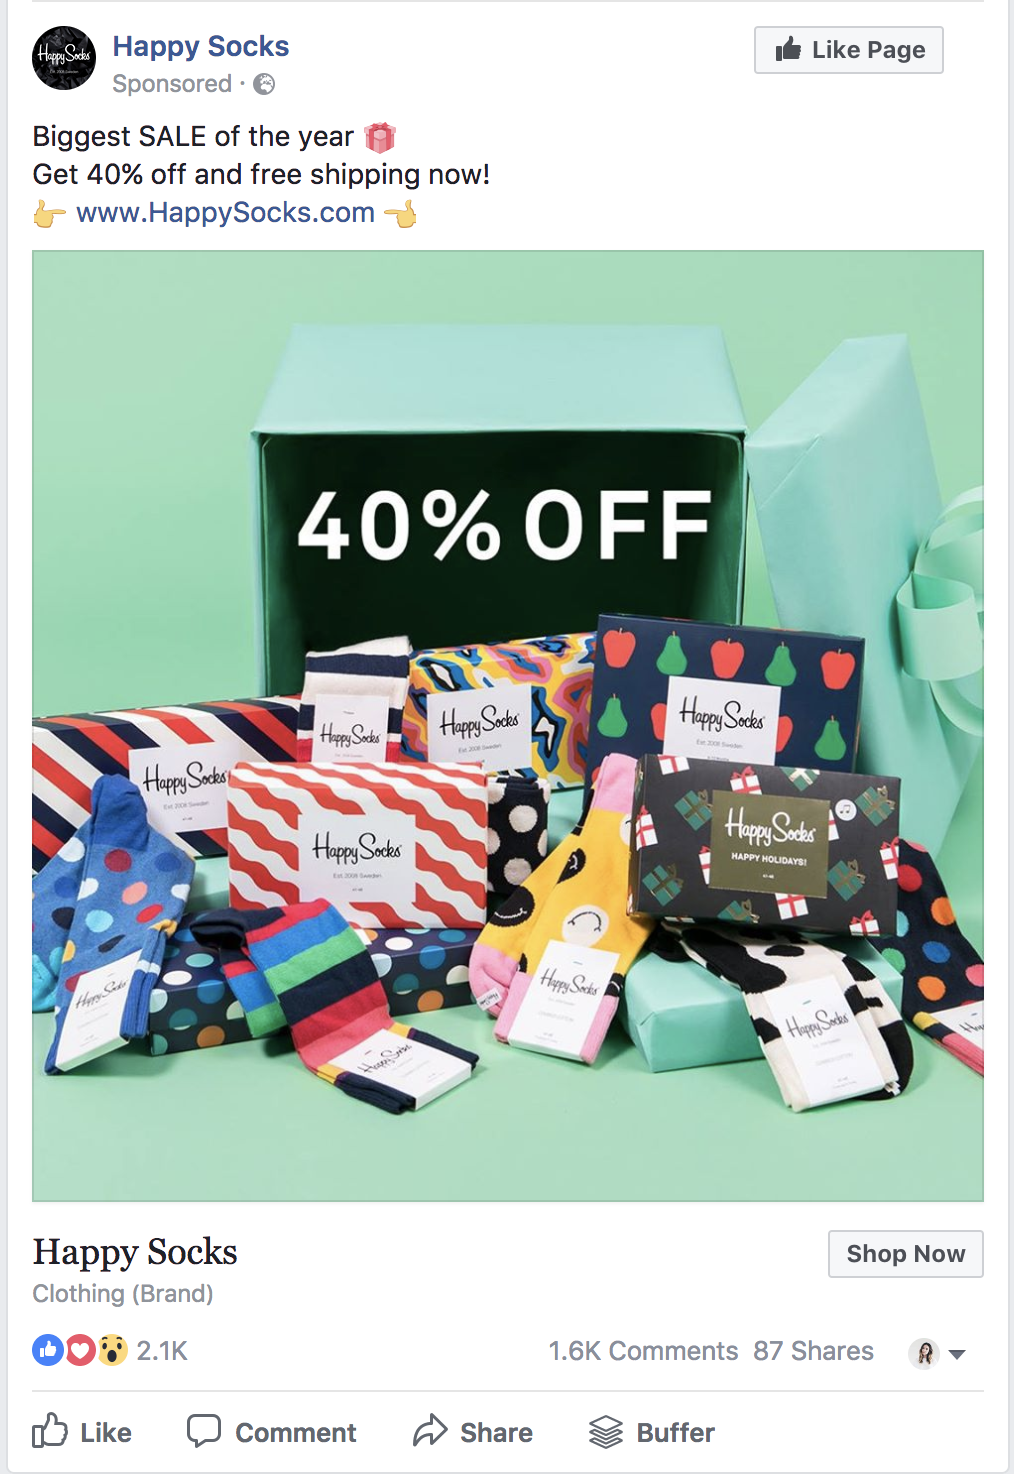 facebook ad example by happy socks